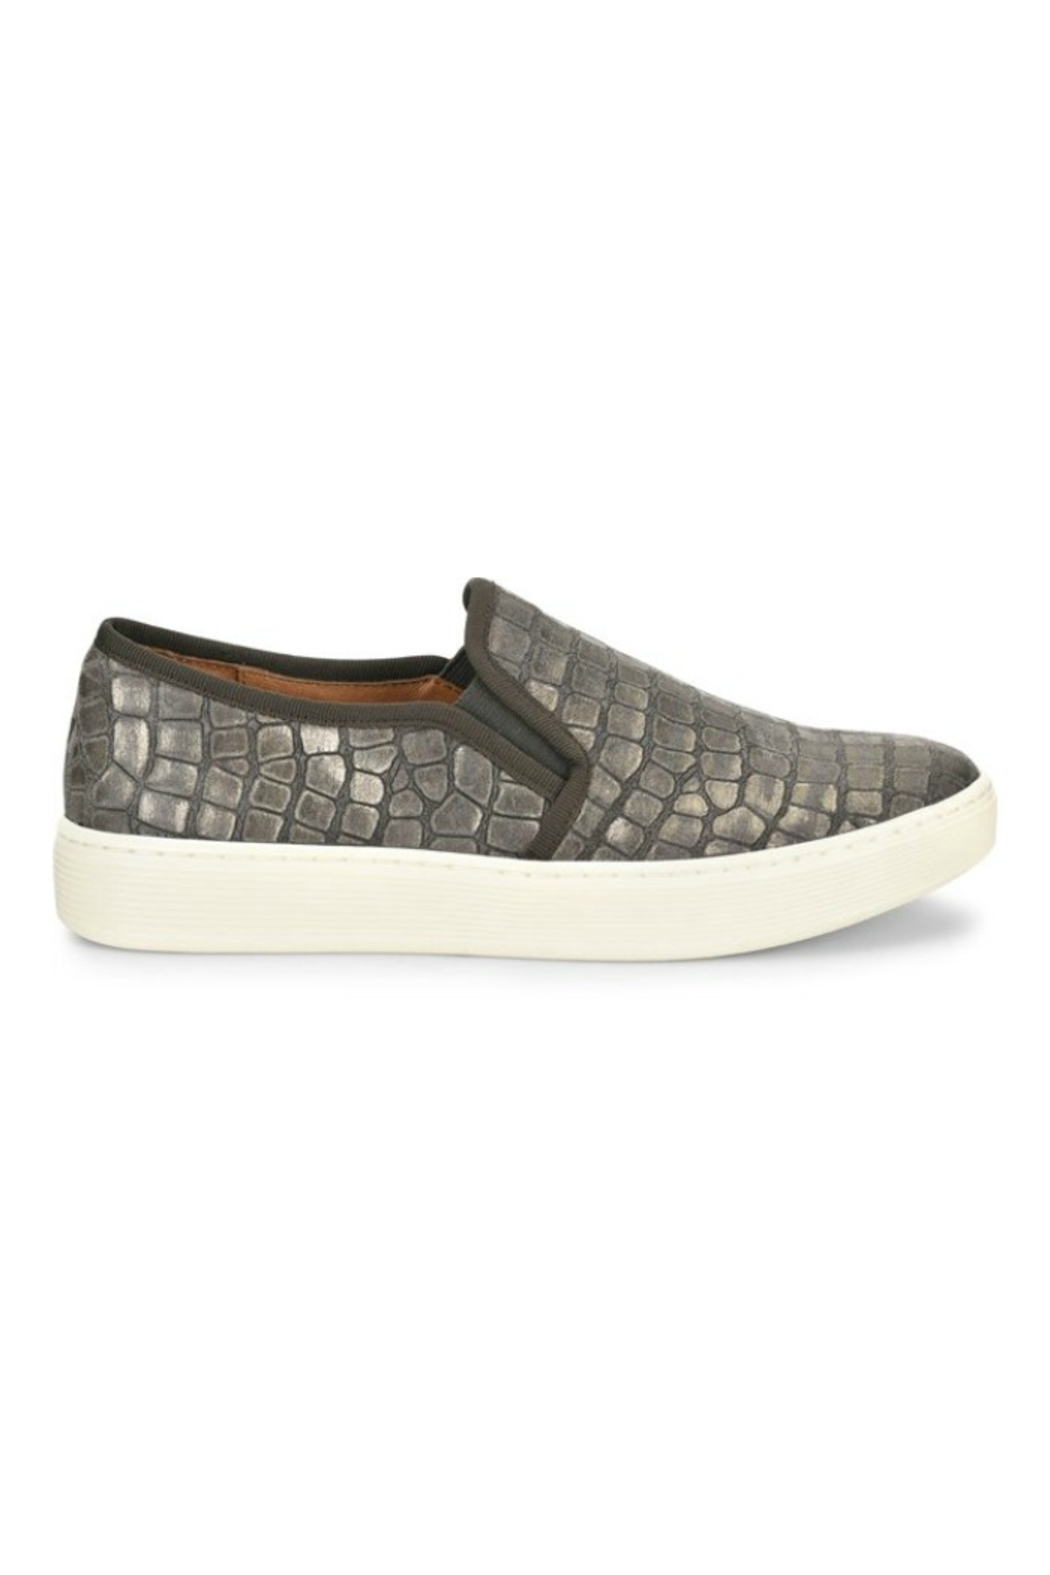 Sofft Somers Slip on in Grey Nubuck - Main Image